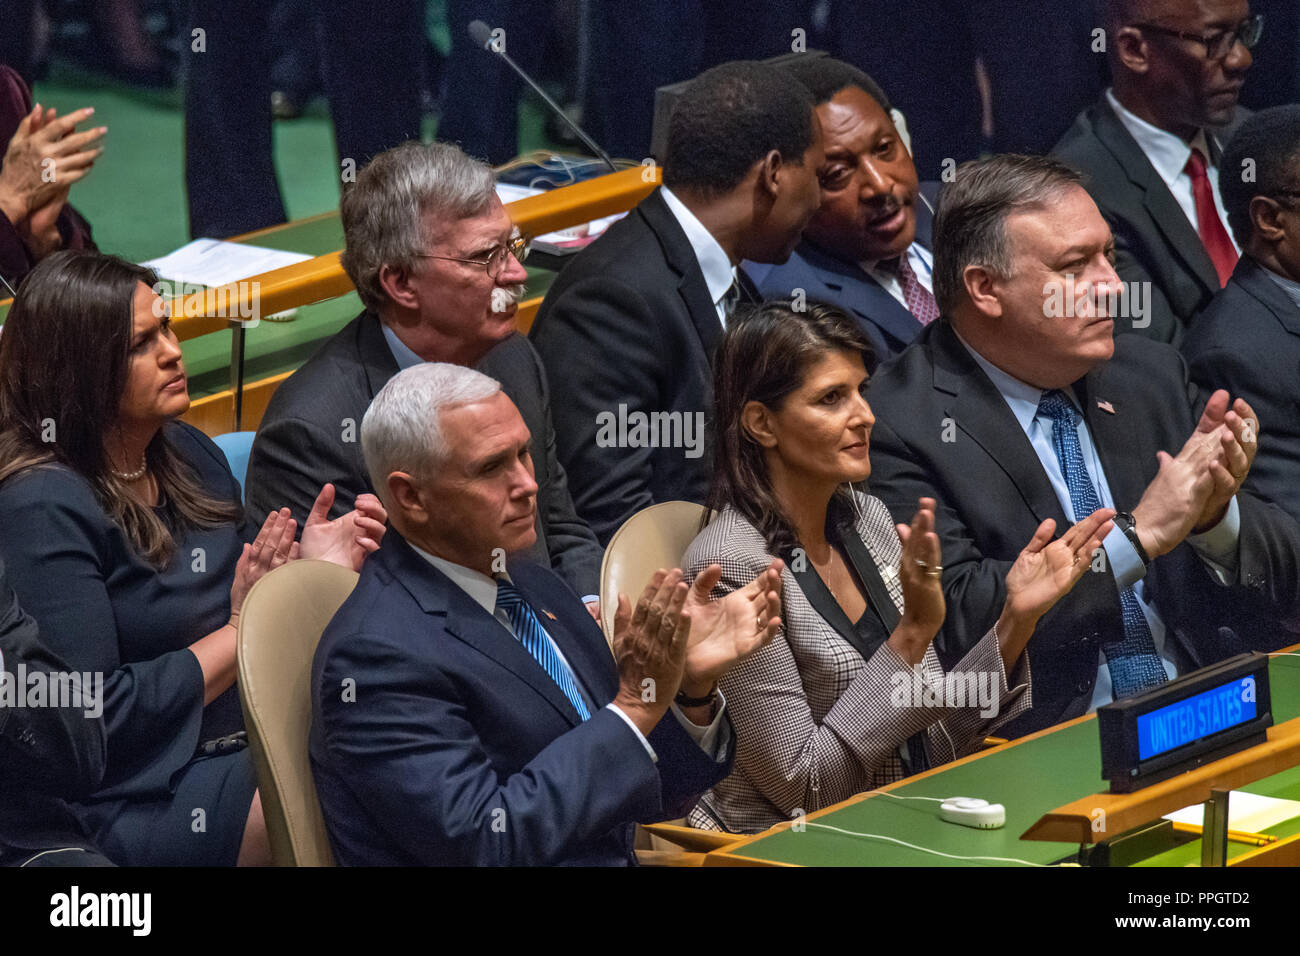 New York, USA, 25 September 2018. L-R: White House press secretary Sarah Huckabee Sanders, US Vice-President Mike Pence, National Security Advisor John Bolton, UN Ambassador Nikki Haley, and Secretary of State Mike Pompeo applaud the arrival of US President Donald Trump at the 73rd United Nations General Assembly. Photo by Enrique Shore Credit: Enrique Shore/Alamy Live News - Stock Image